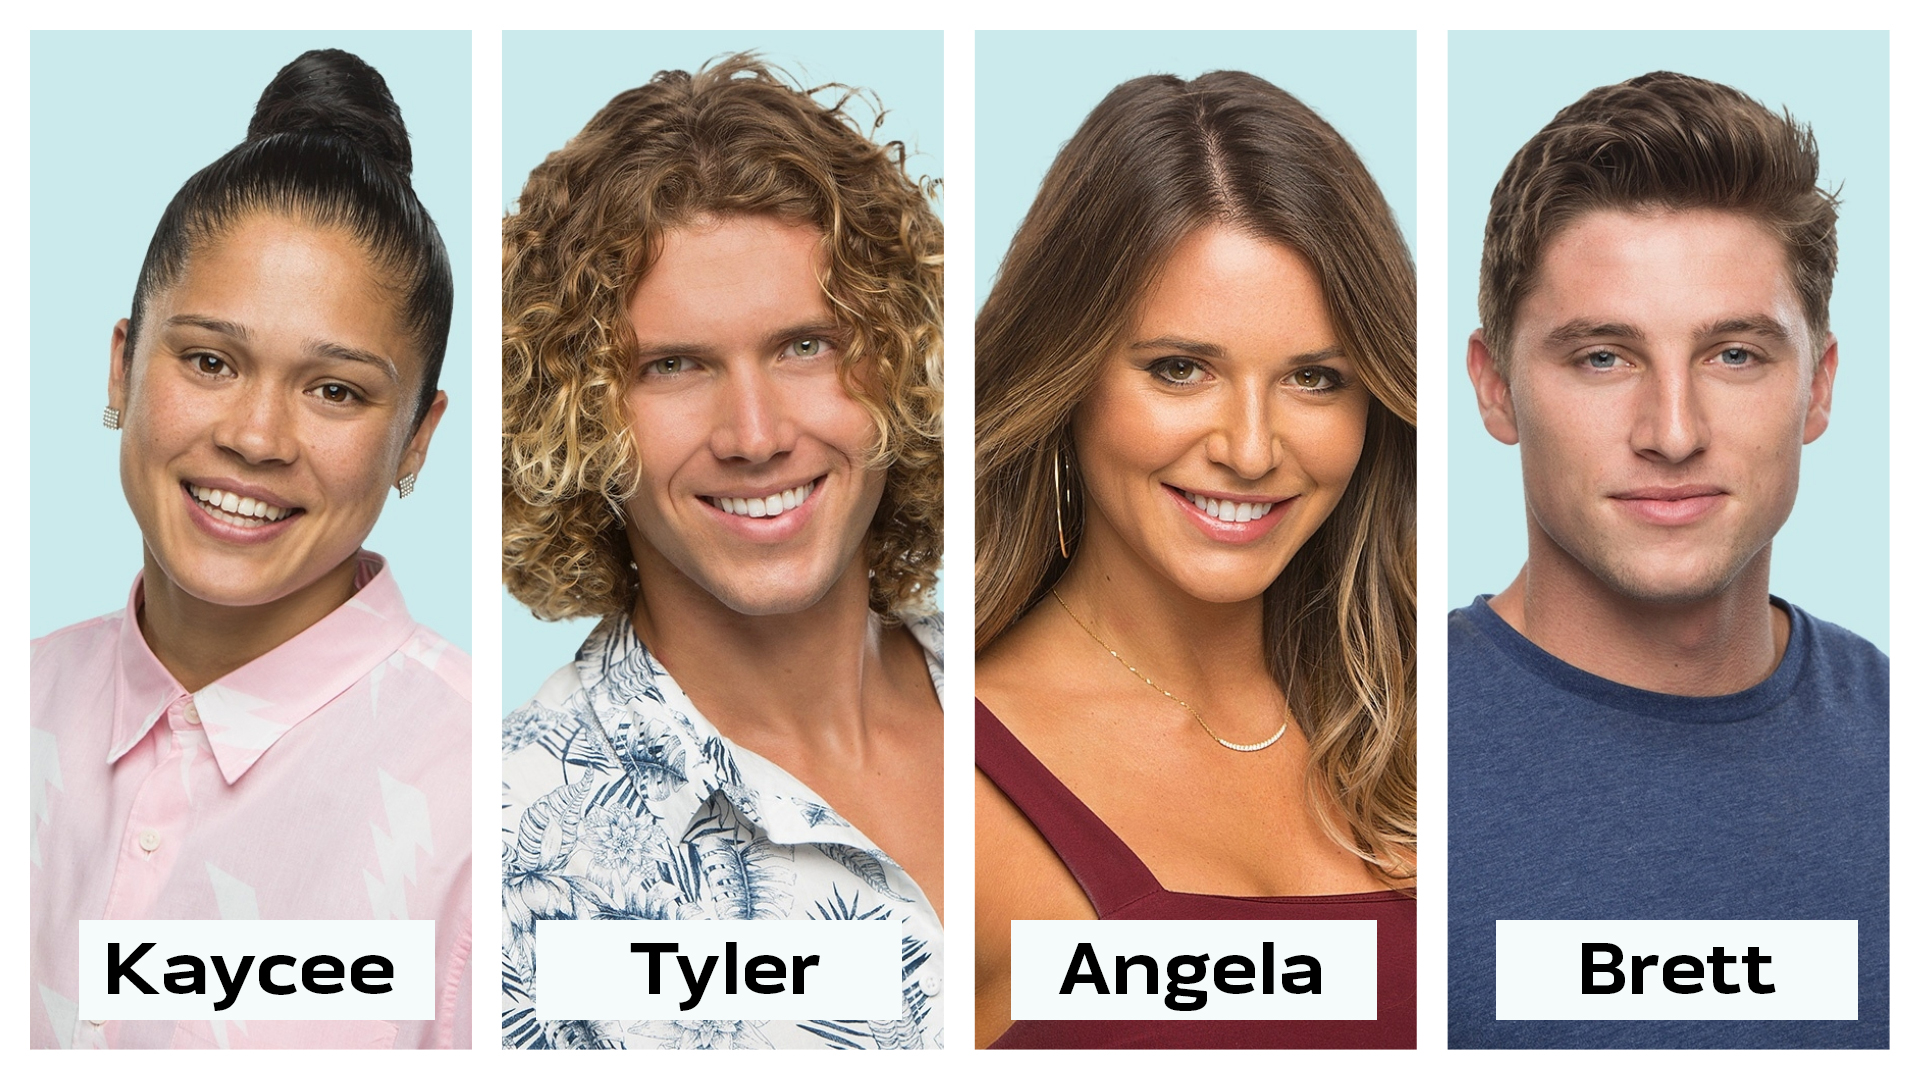 Who was the first BB20 Houseguest to be zinged by Zingbot?